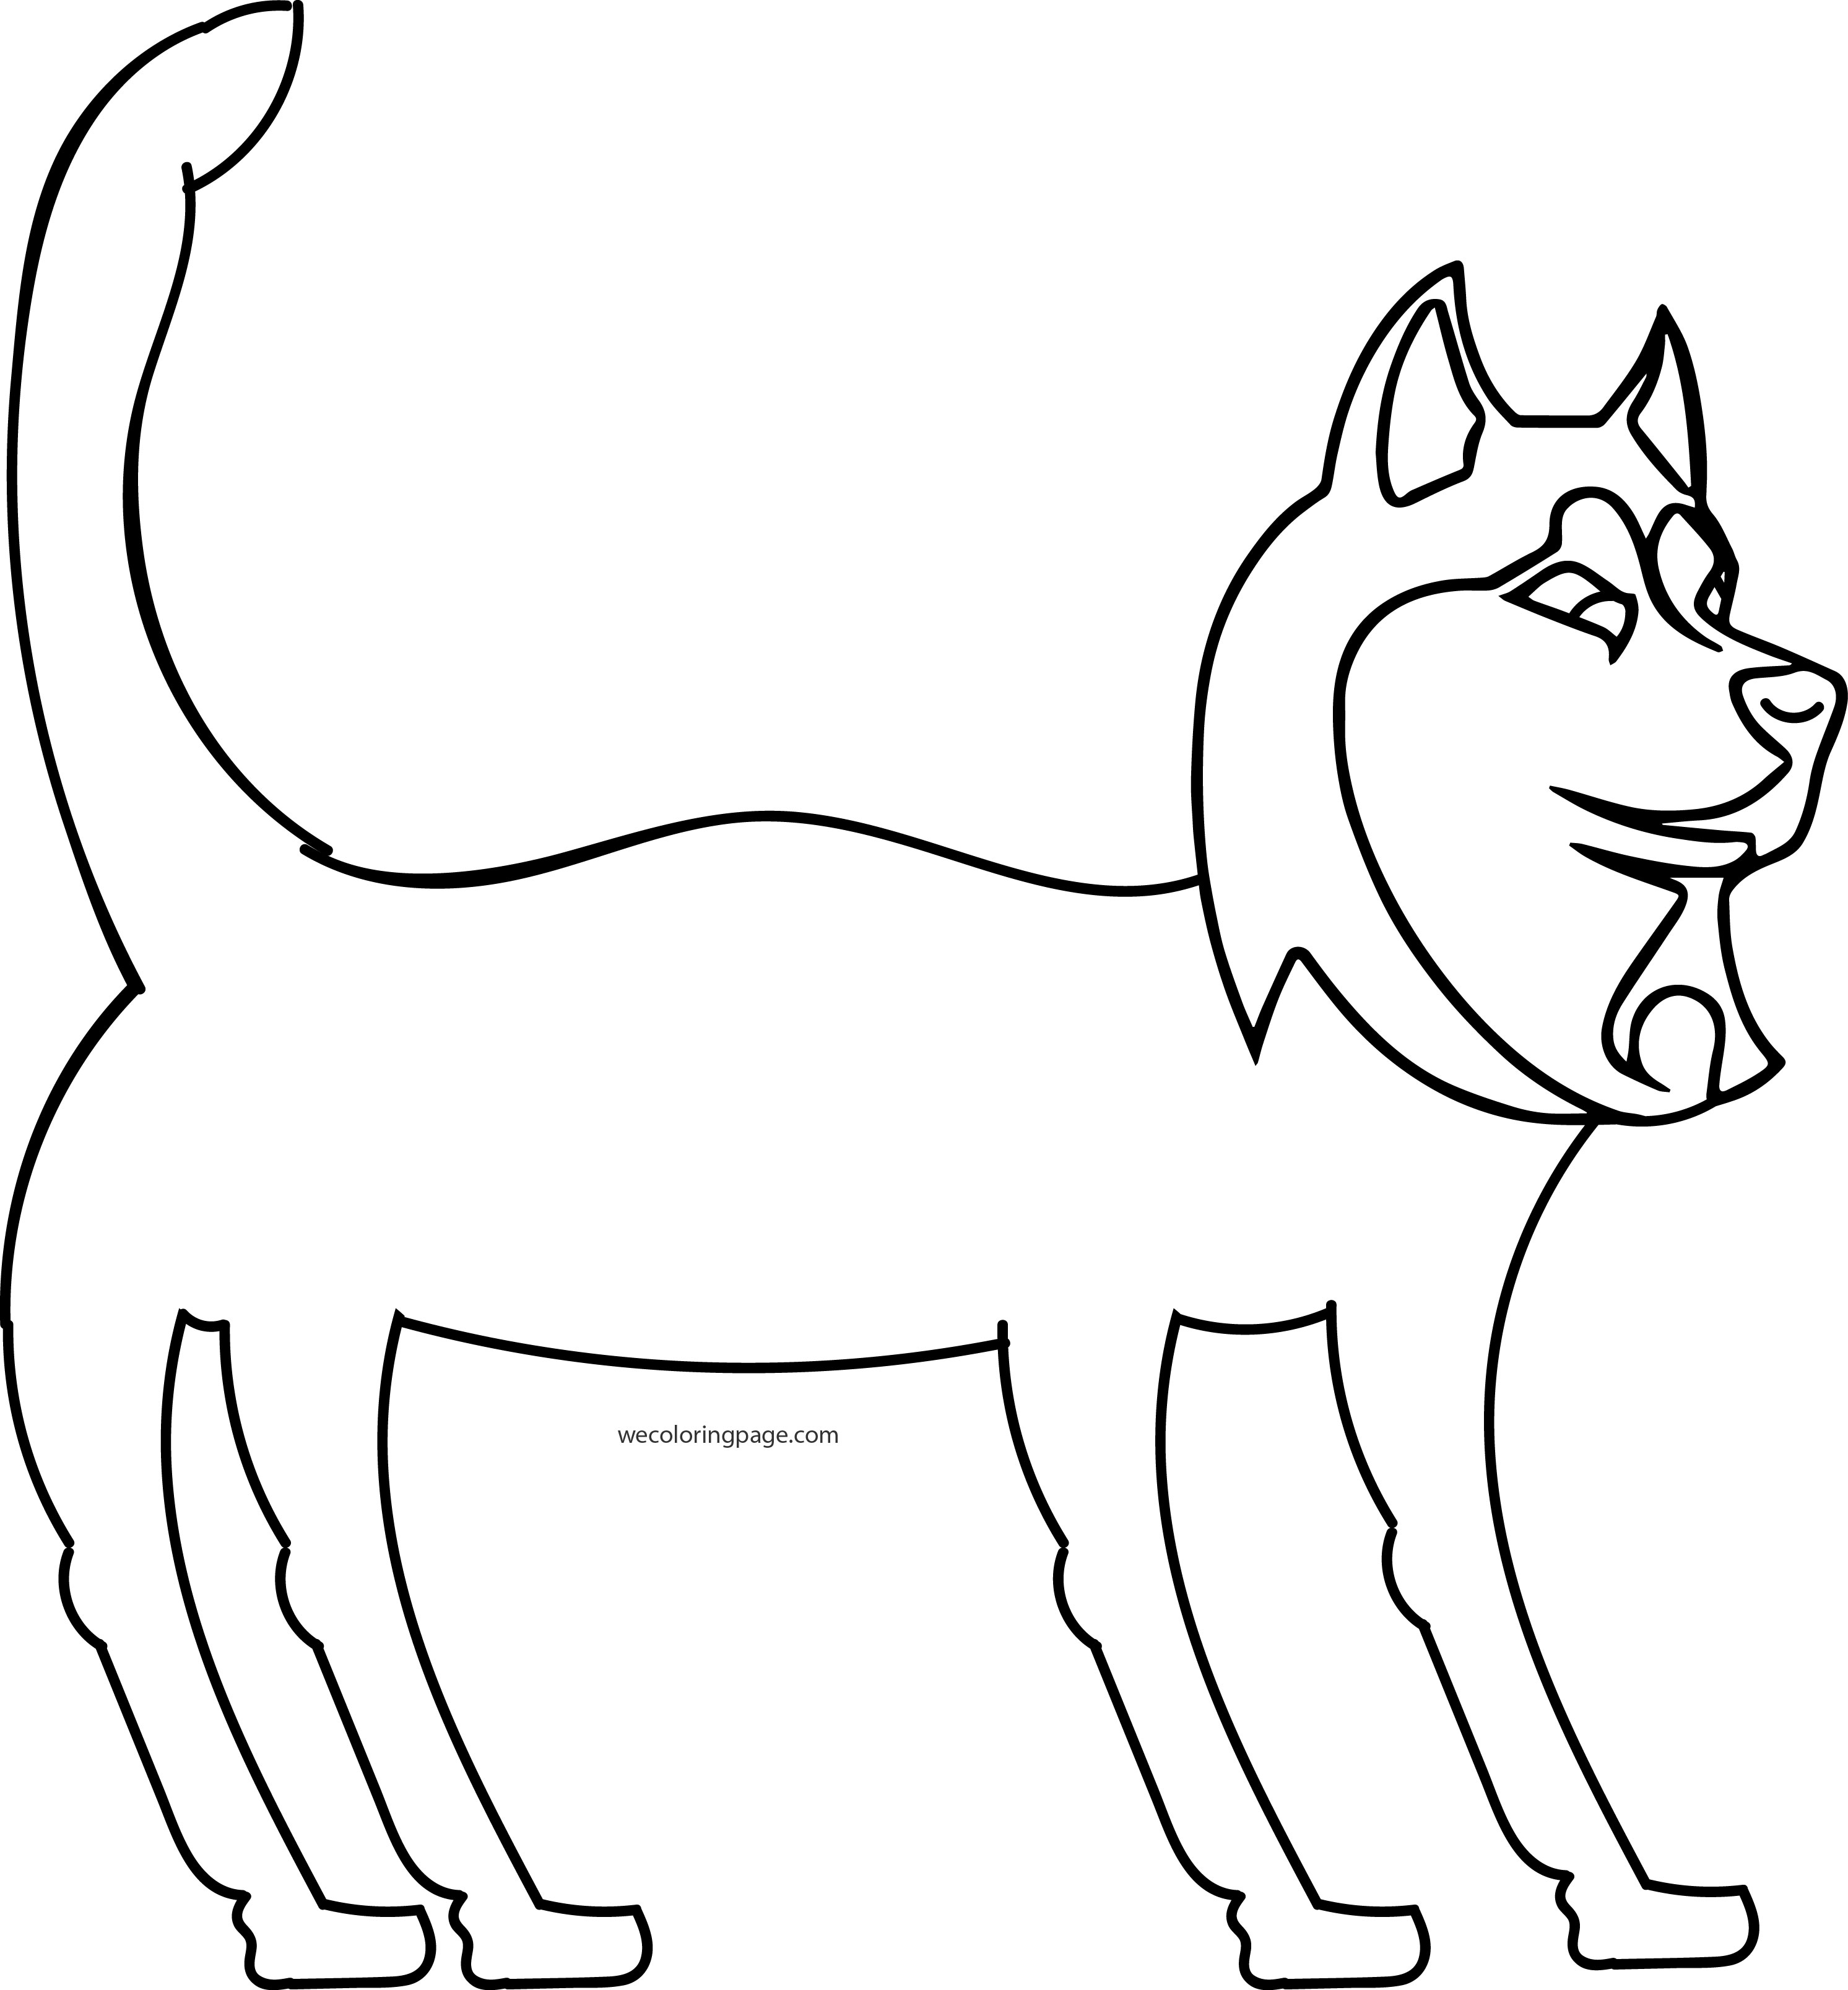 Husky 02 Coloring Page